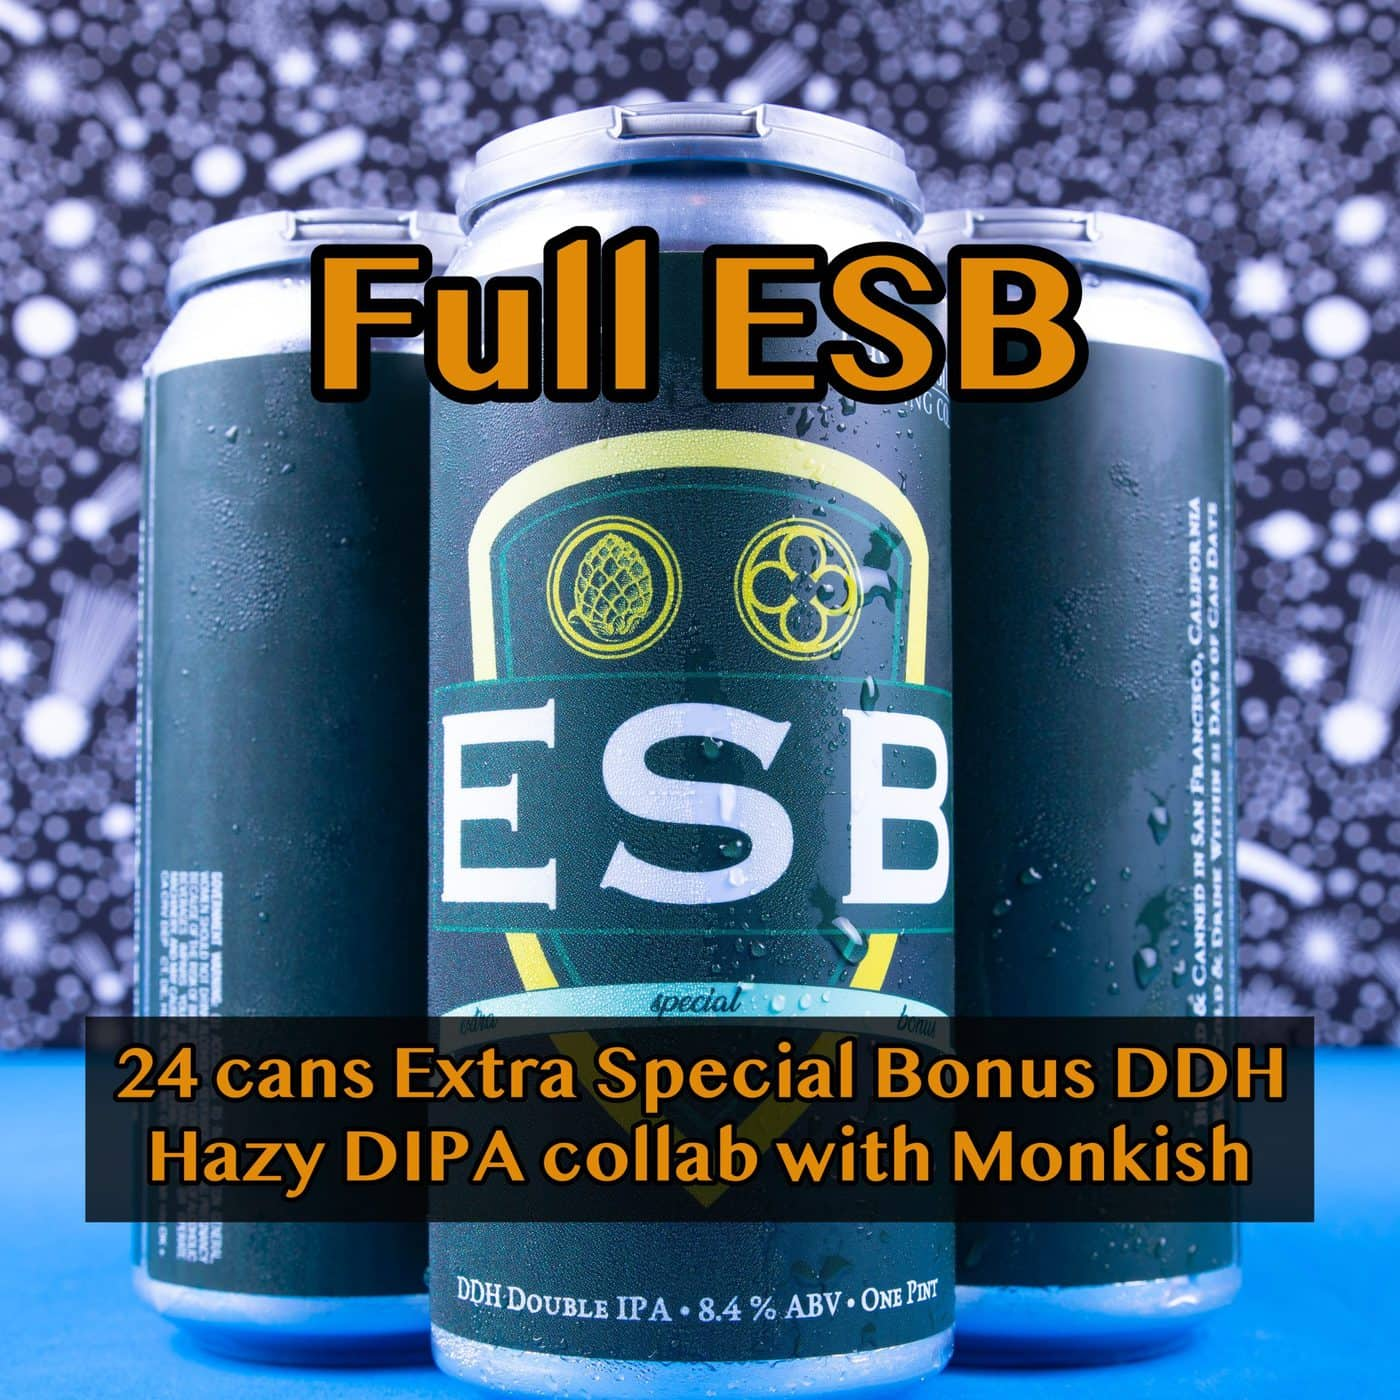 FULL CASE 24 CANS Extra Special Bonus DDH DIPA… SHIPPING Out On WEDNESDAY 12/2 For NEXT DAY Delivery*